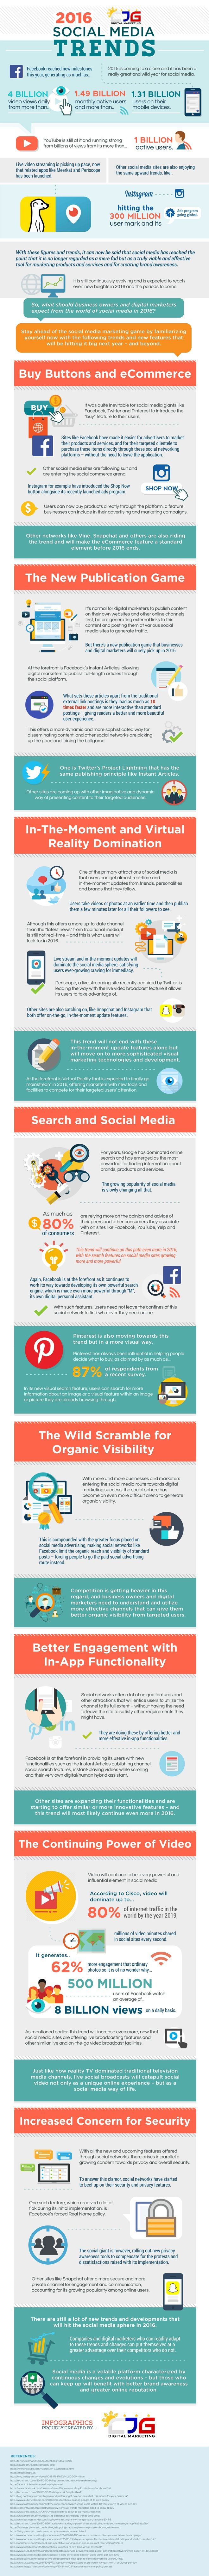 Social Media Marketing Trends 2016: Insights & Predictions - #infographic #radicalmarketing - Tech Wow